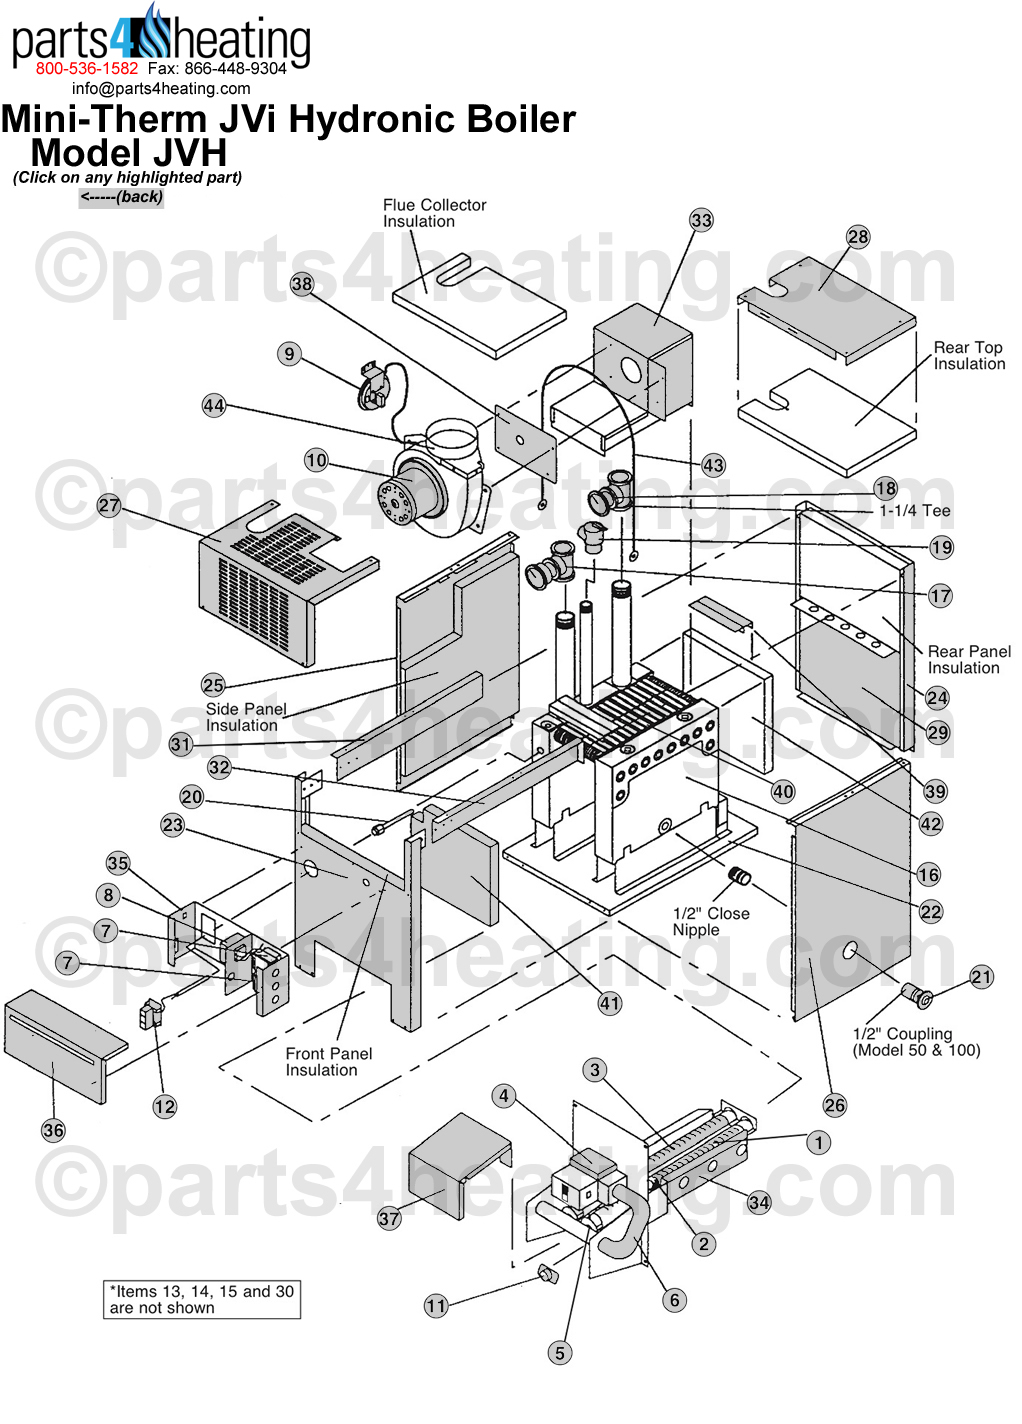 Laars Mini Therm JVi Boiler teledyne laars mini therm jvi jvh laars mighty therm wiring diagram at aneh.co